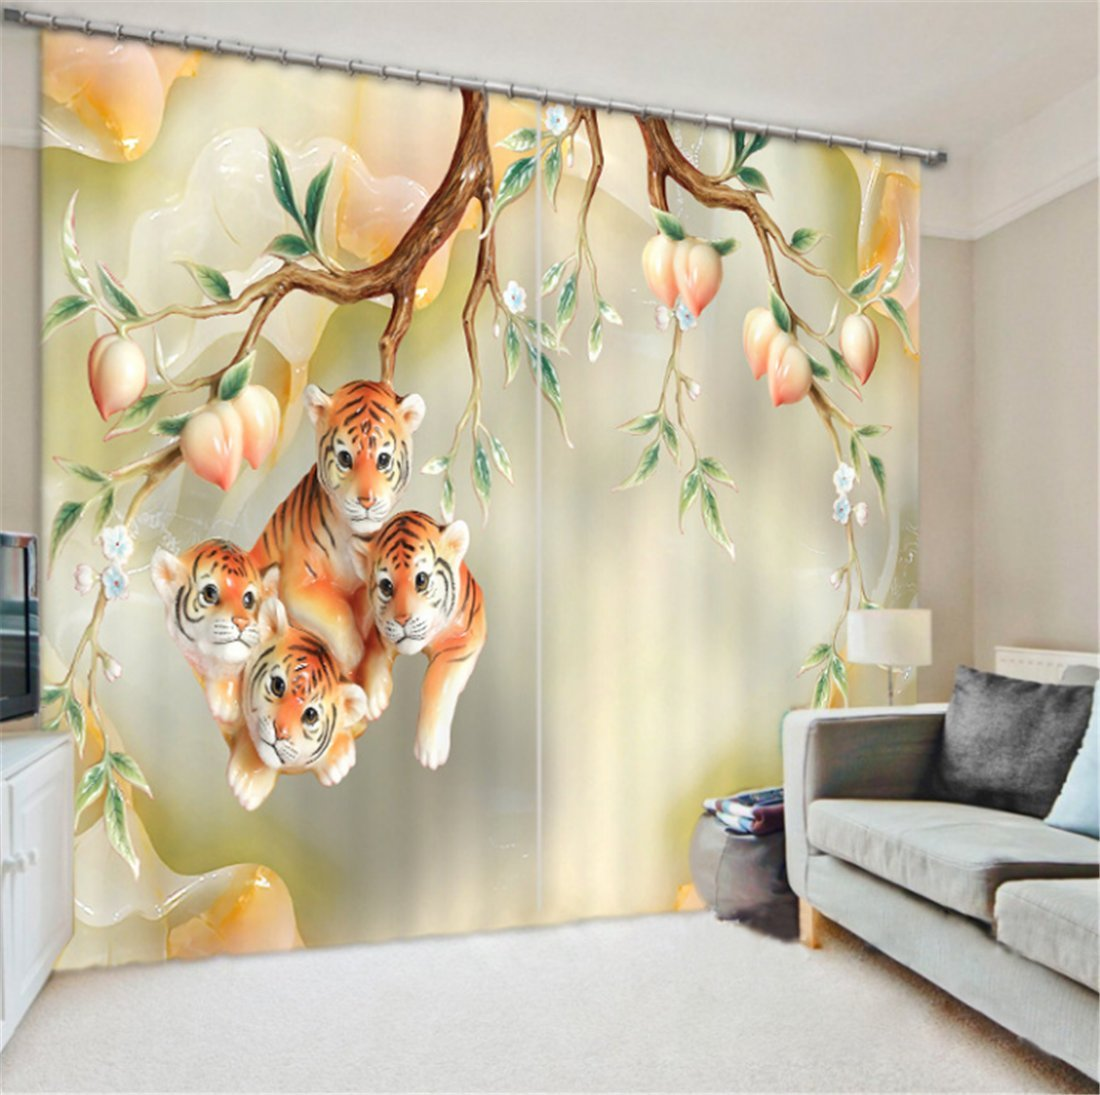 LB Teen Kids Animal Decor Collection,2 Panels Room Darkening Blackout Curtains,Young Tiger 3D Effect Print Window Treatment Curtains Living Room Bedroom Window Drapes,80 x 84 Inches